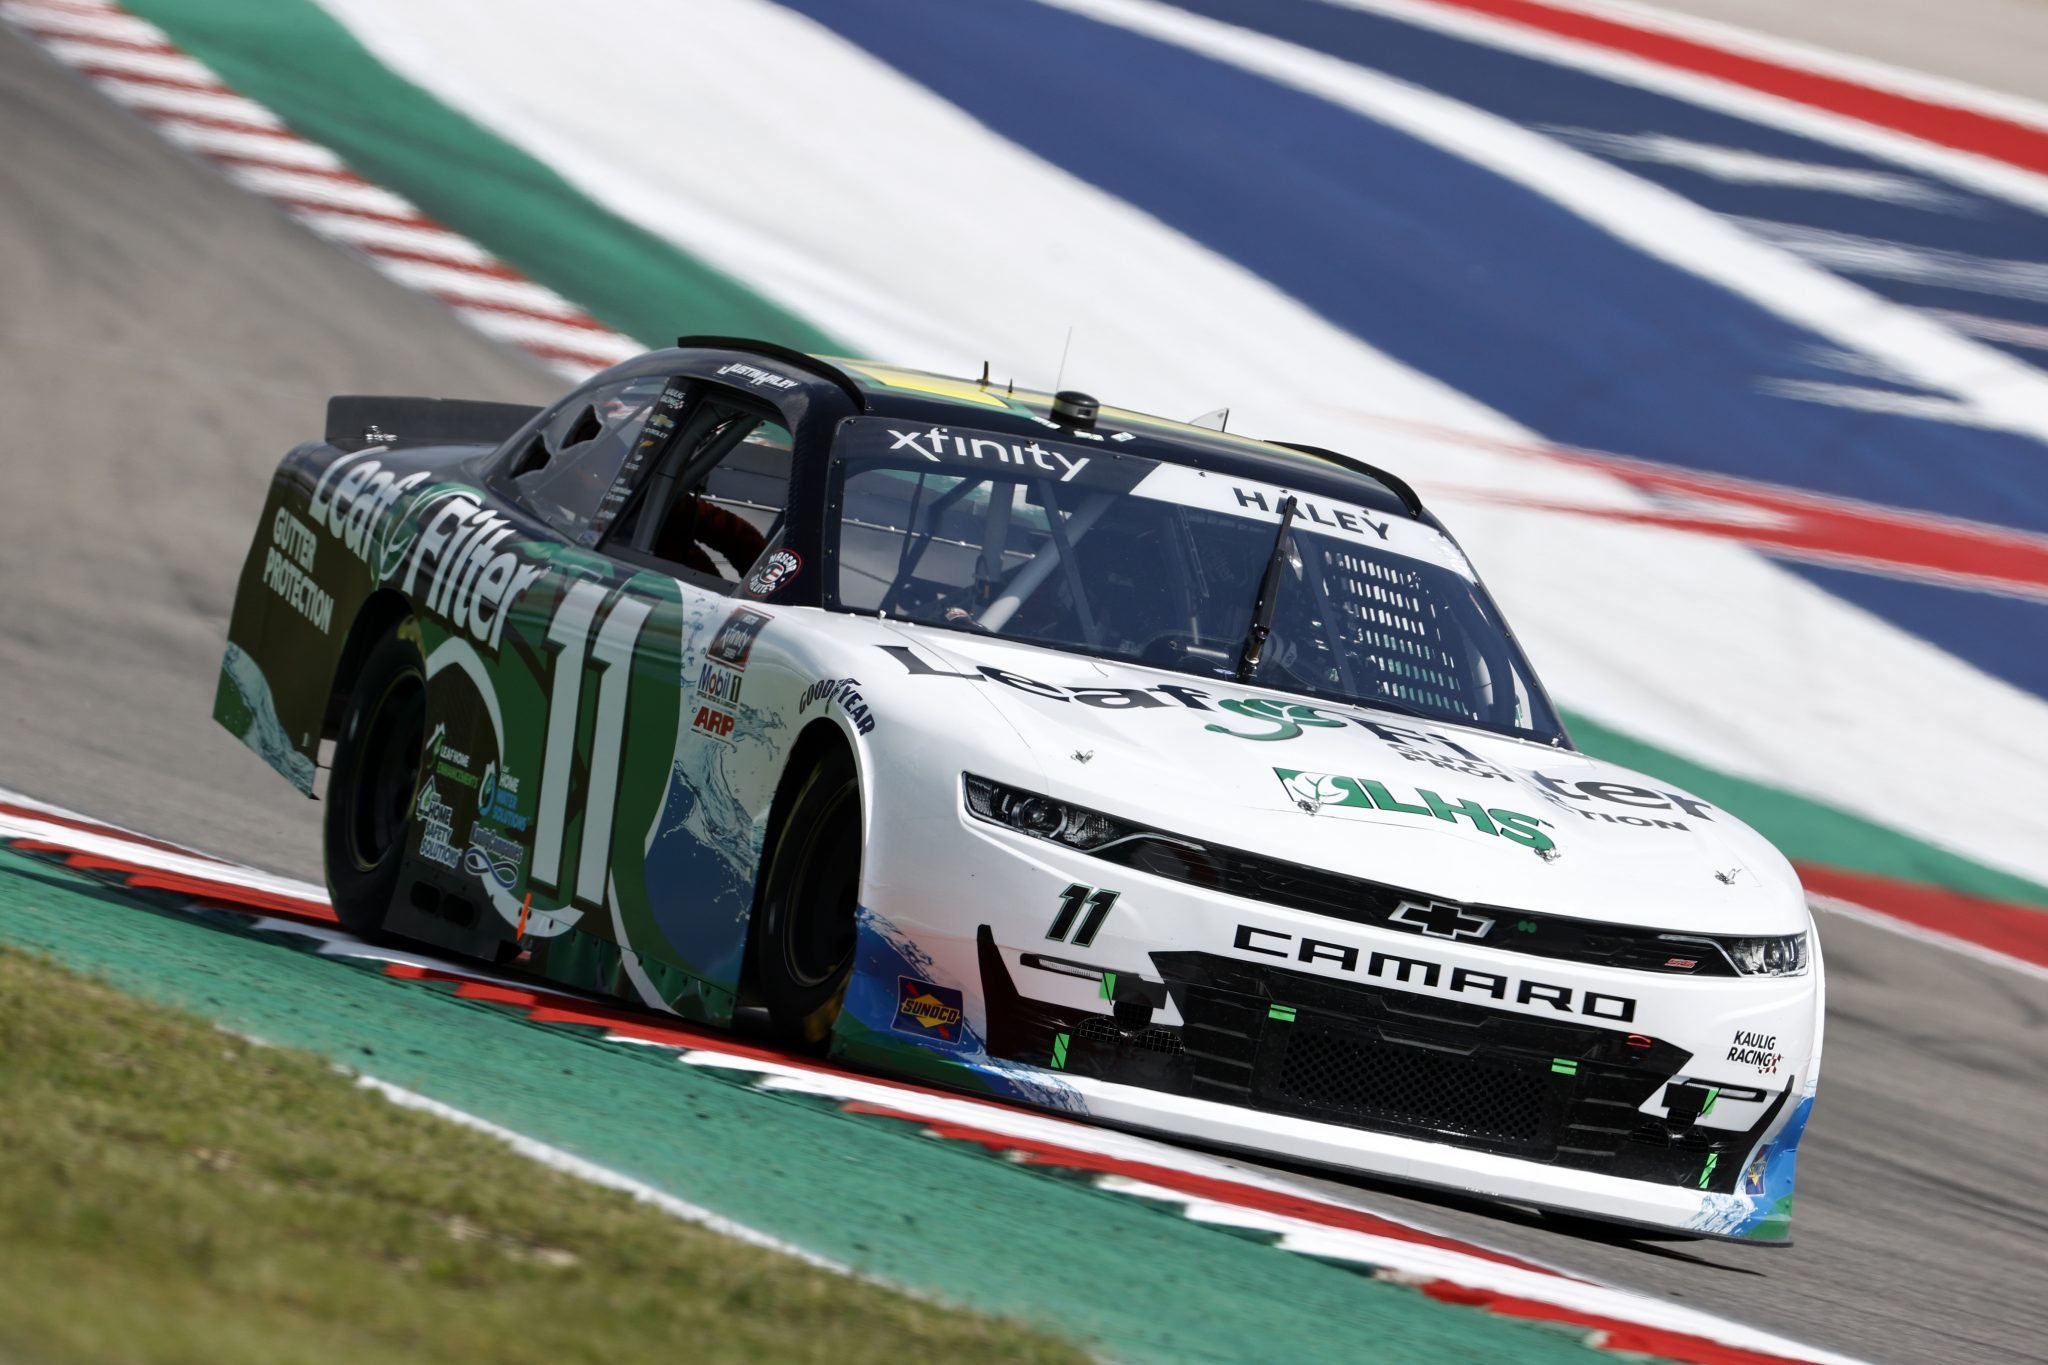 AUSTIN, TEXAS - MAY 21: Justin Haley, driver of the #11 LeafFilter Gutter Protection Chevrolet, drives during practice for the NASCAR Xfinity Series Pit Boss 250 at Circuit of The Americas on May 21, 2021 in Austin, Texas. (Photo by Chris Graythen/Getty Images) | Getty Images